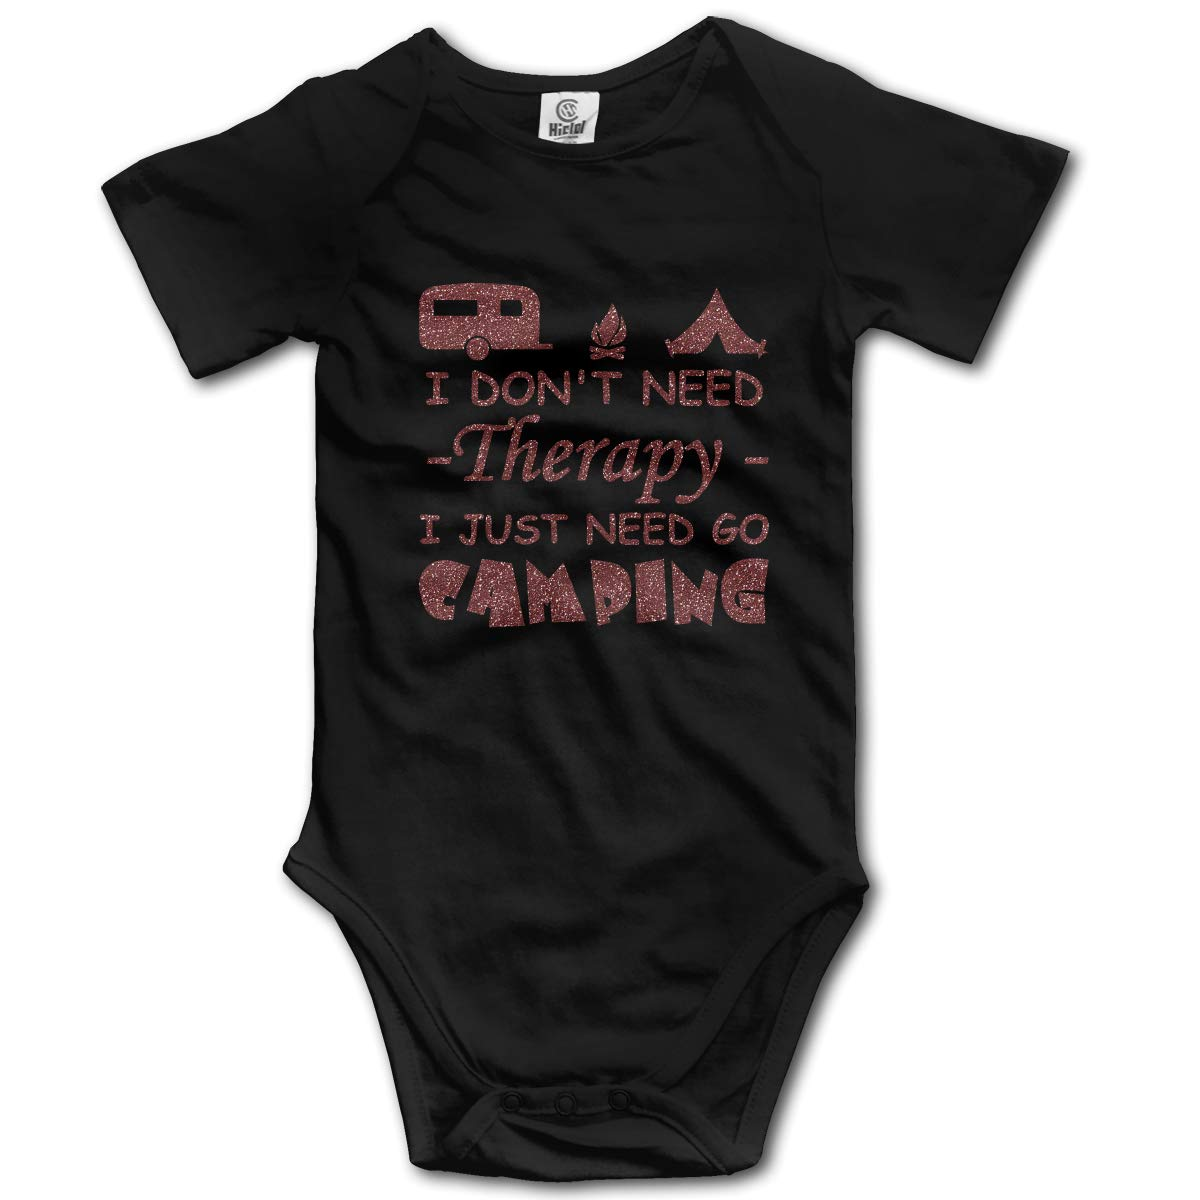 XHX Newborn Babys Need to Go Camping Short Sleeve Romper Onesie Bodysuit Jumpsuit